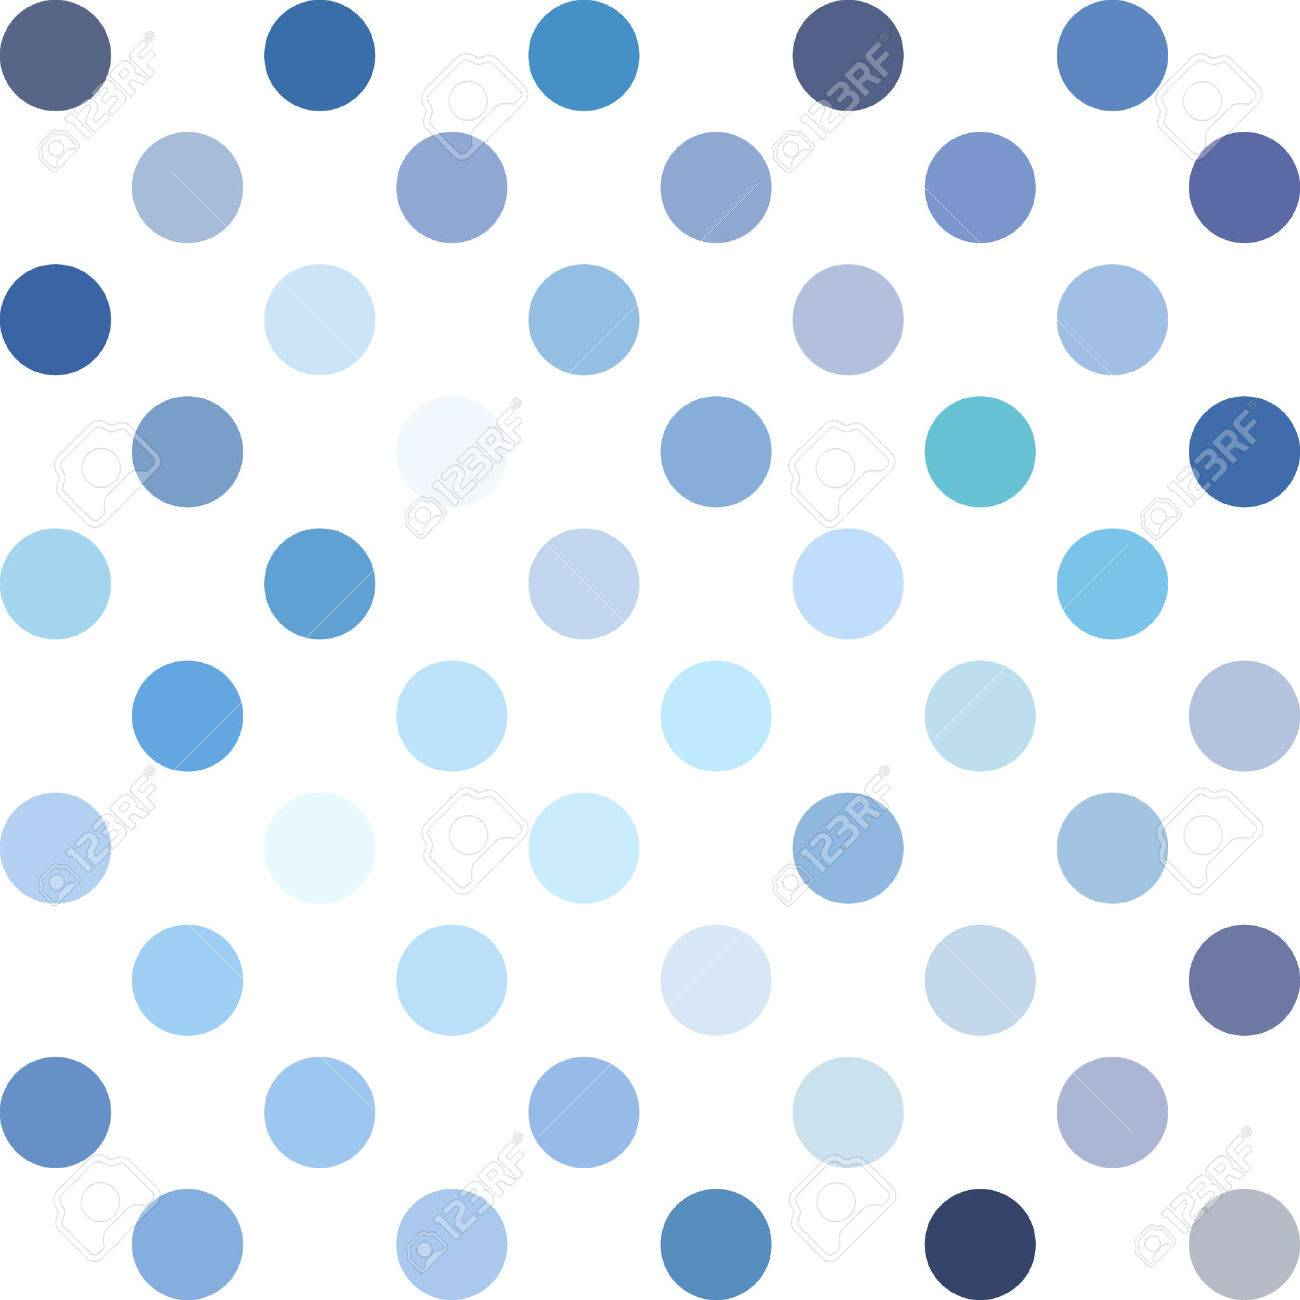 Blue Polka Dots Background.